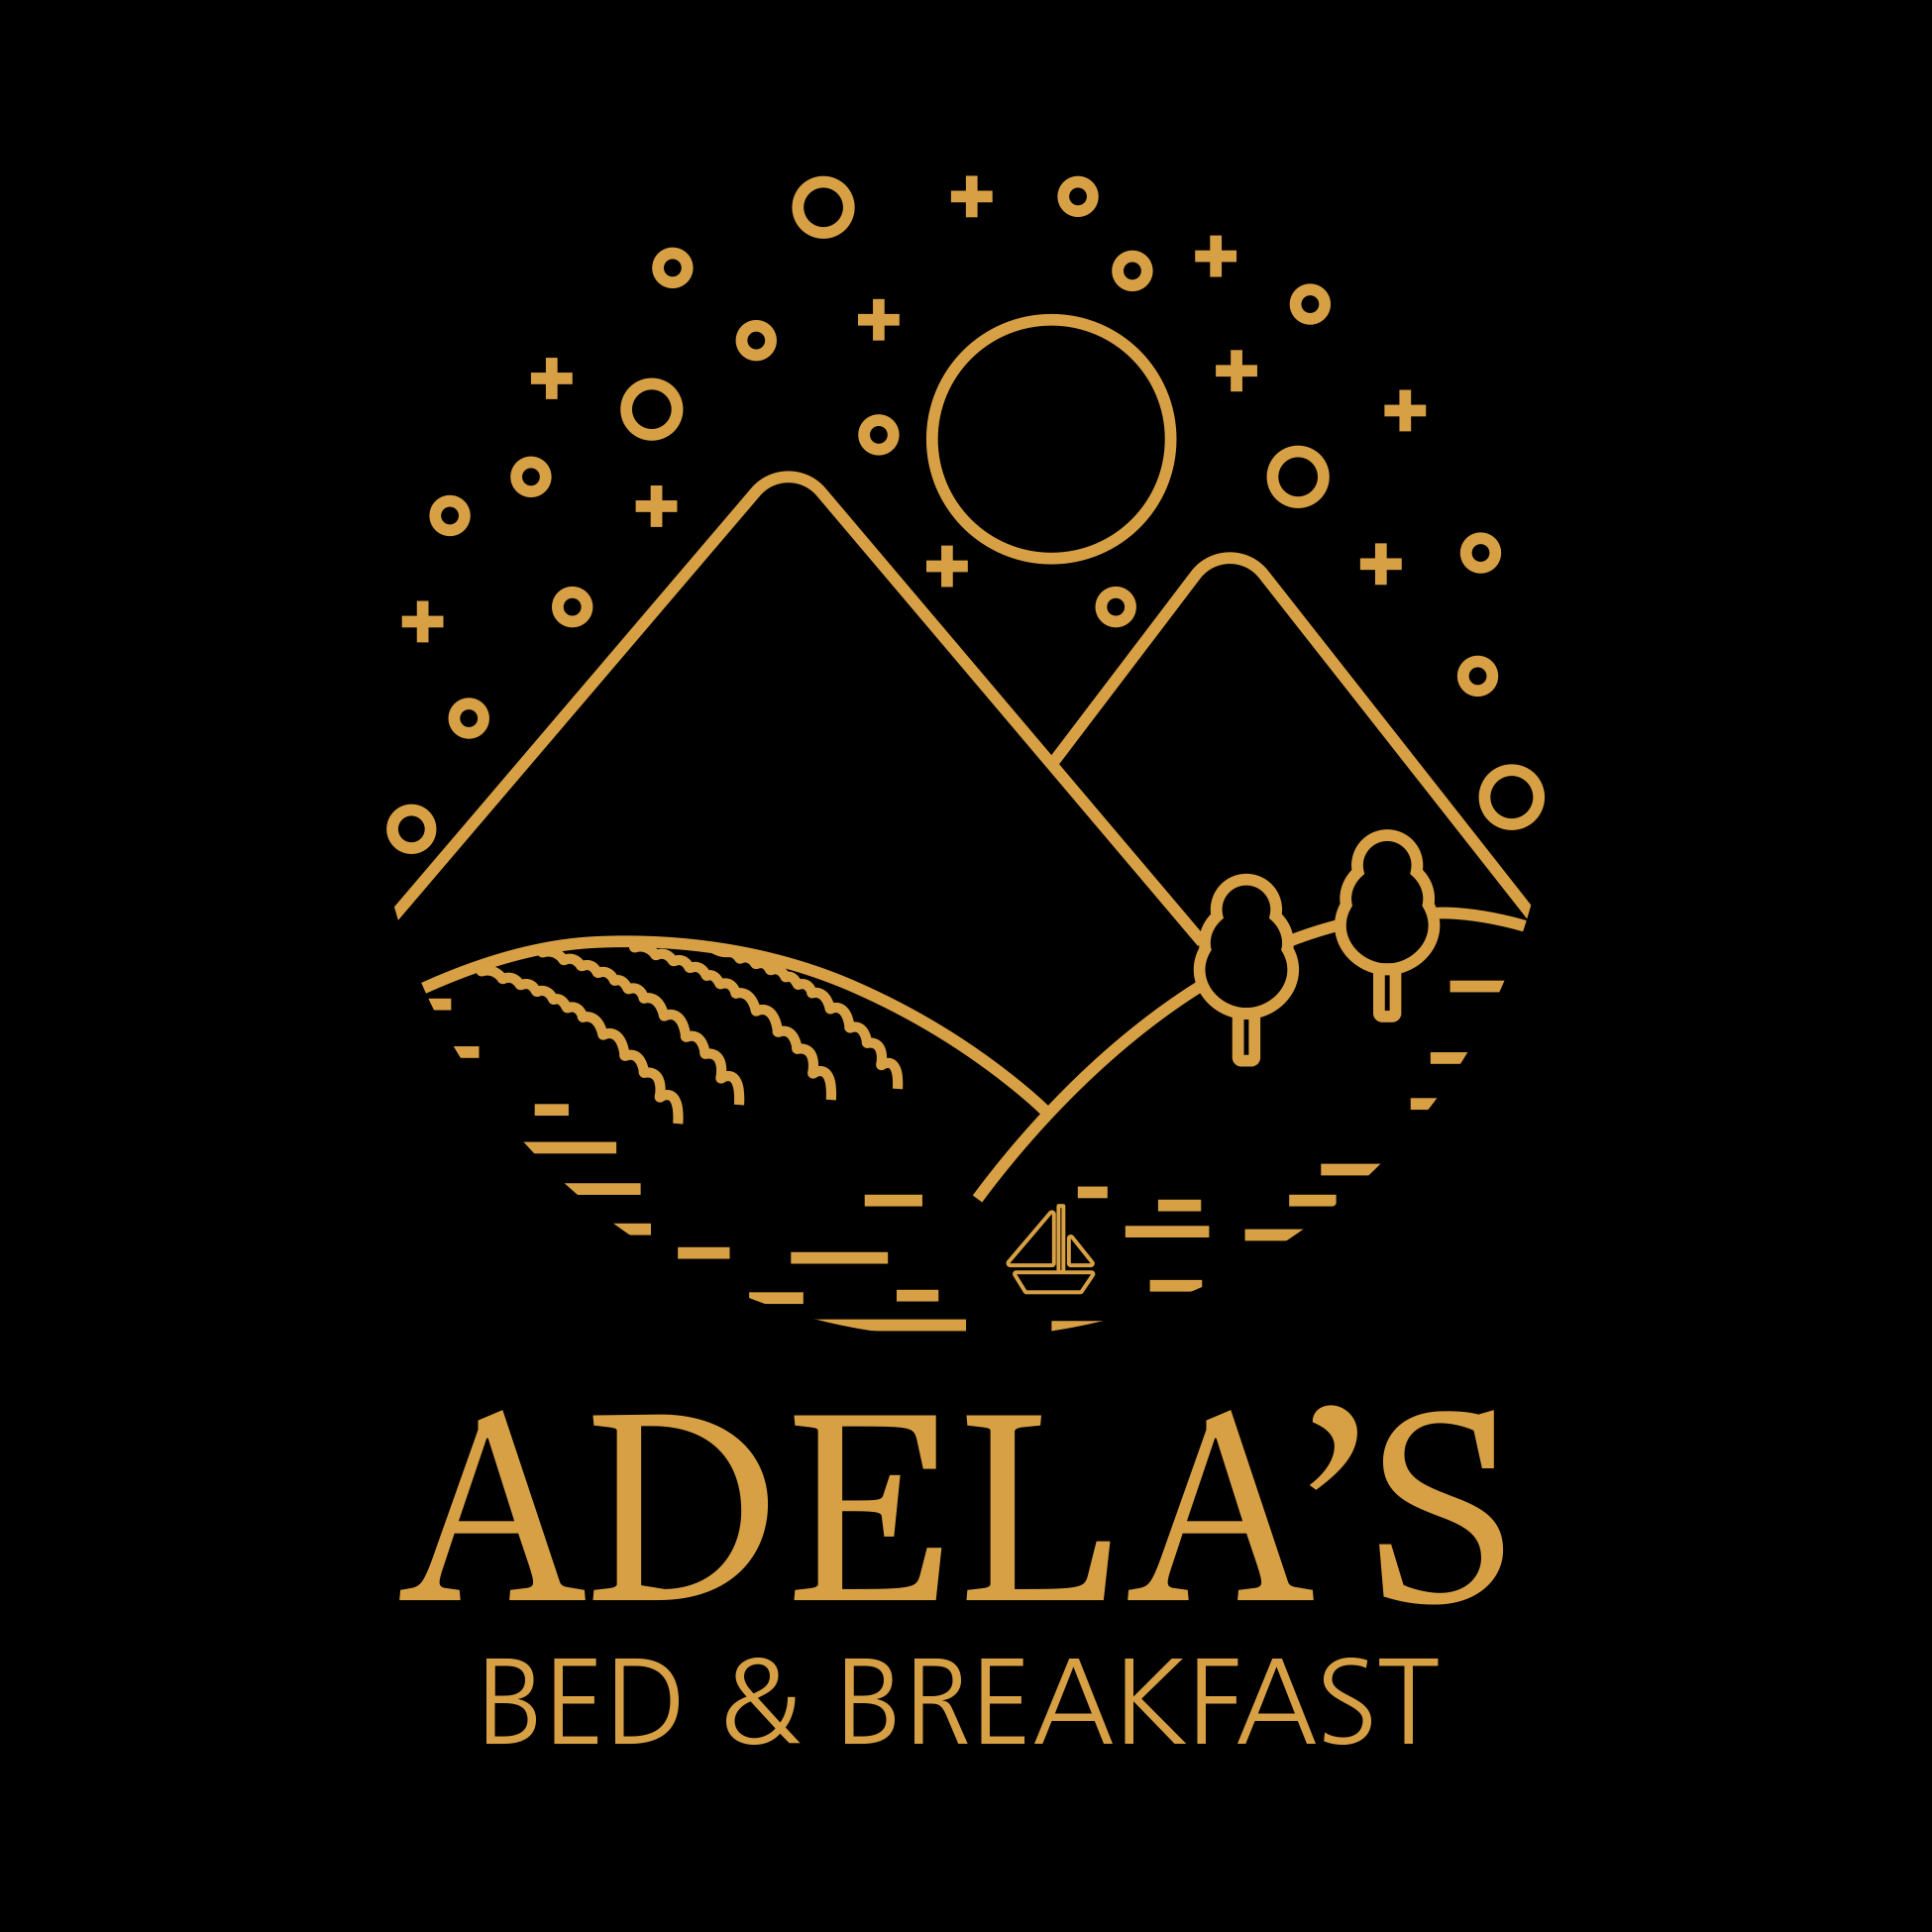 Adela's Logo (Gold on Black)